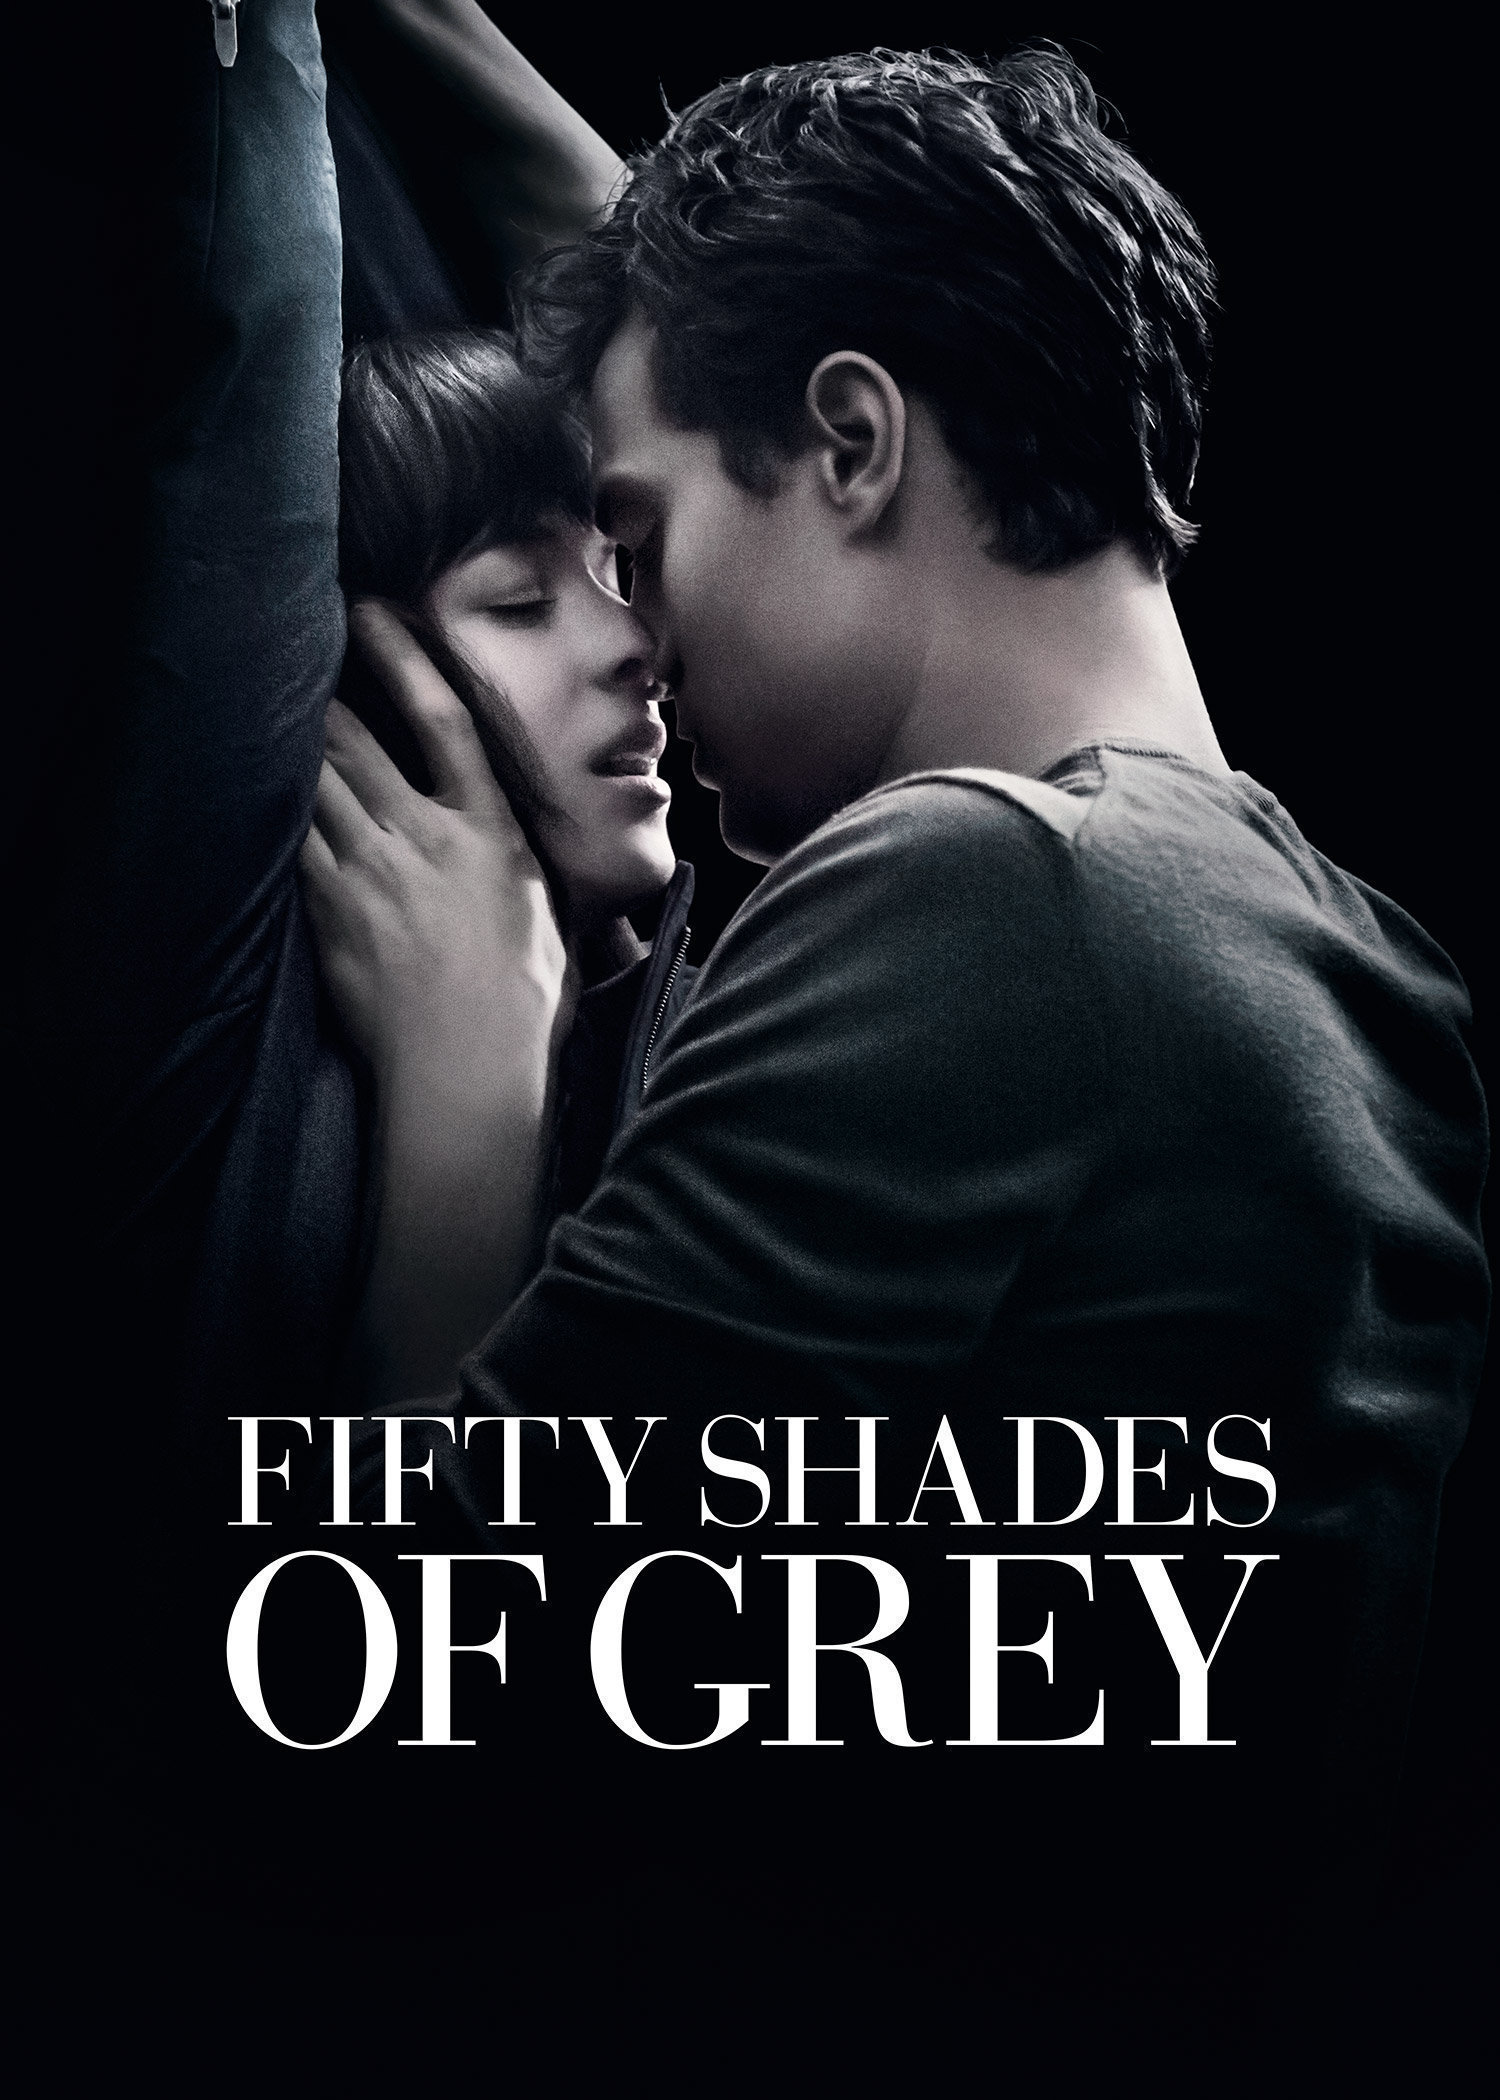 Fifty Shades of Grey (film) - Wikipedia